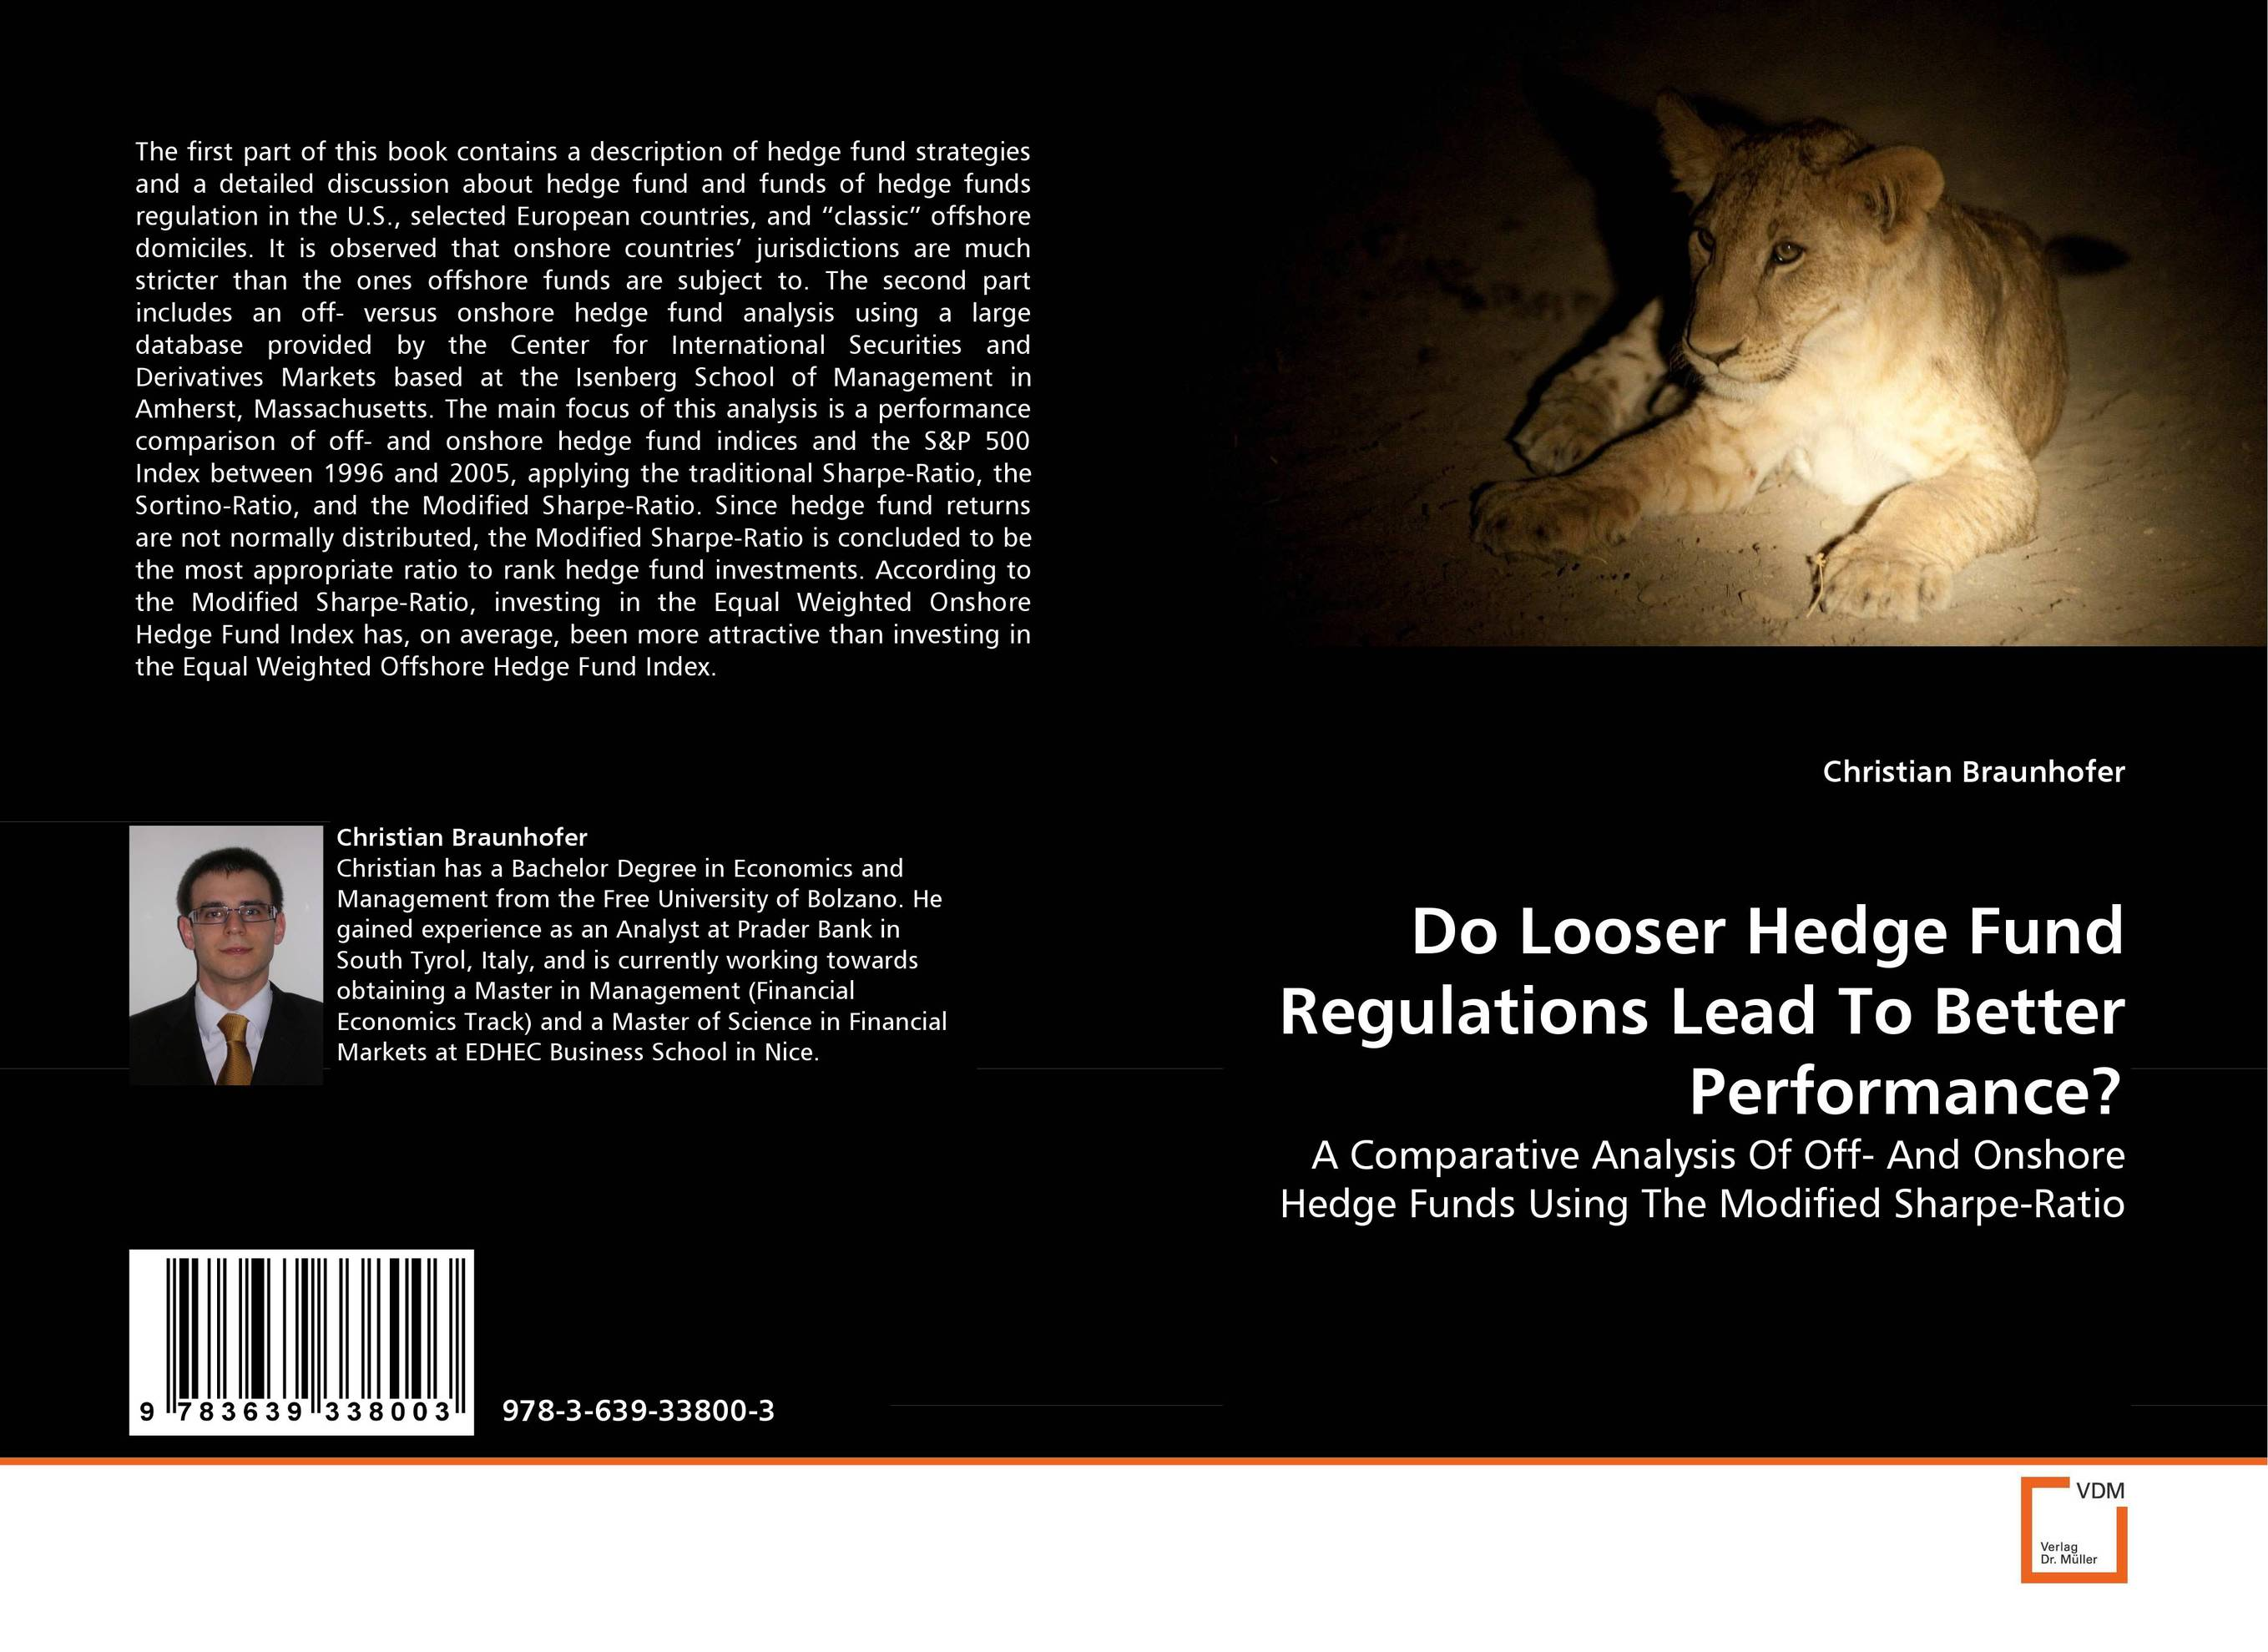 Do Looser Hedge Fund Regulations Lead To Better Performance? daniel strachman a the fundamentals of hedge fund management how to successfully launch and operate a hedge fund